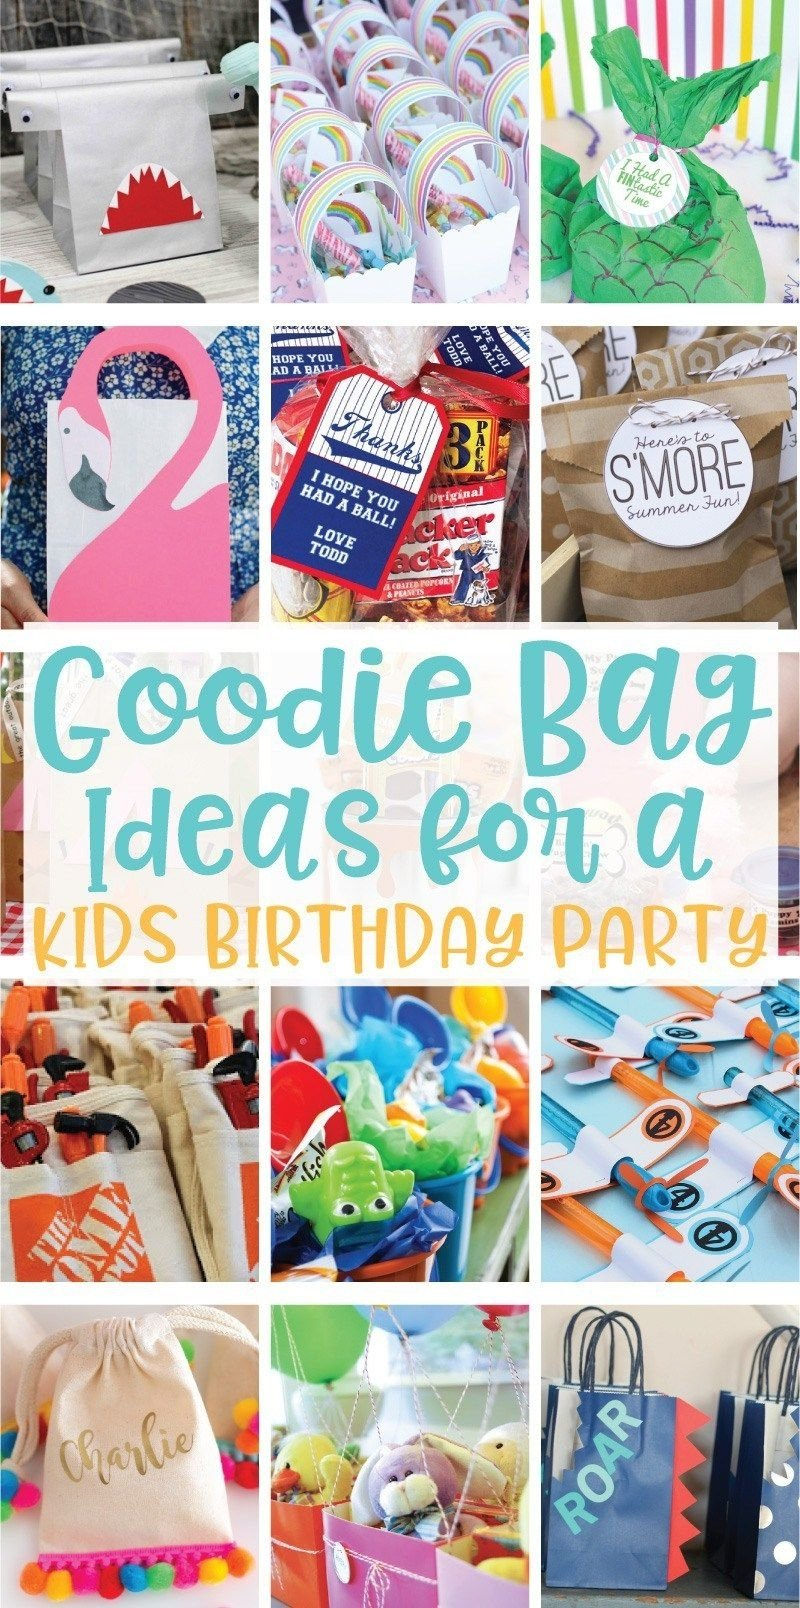 10 Spectacular Goodie Bag Ideas For Kids Birthday Parties 20 creative goodie bag ideas for kids birthday parties on goodie 1 2021